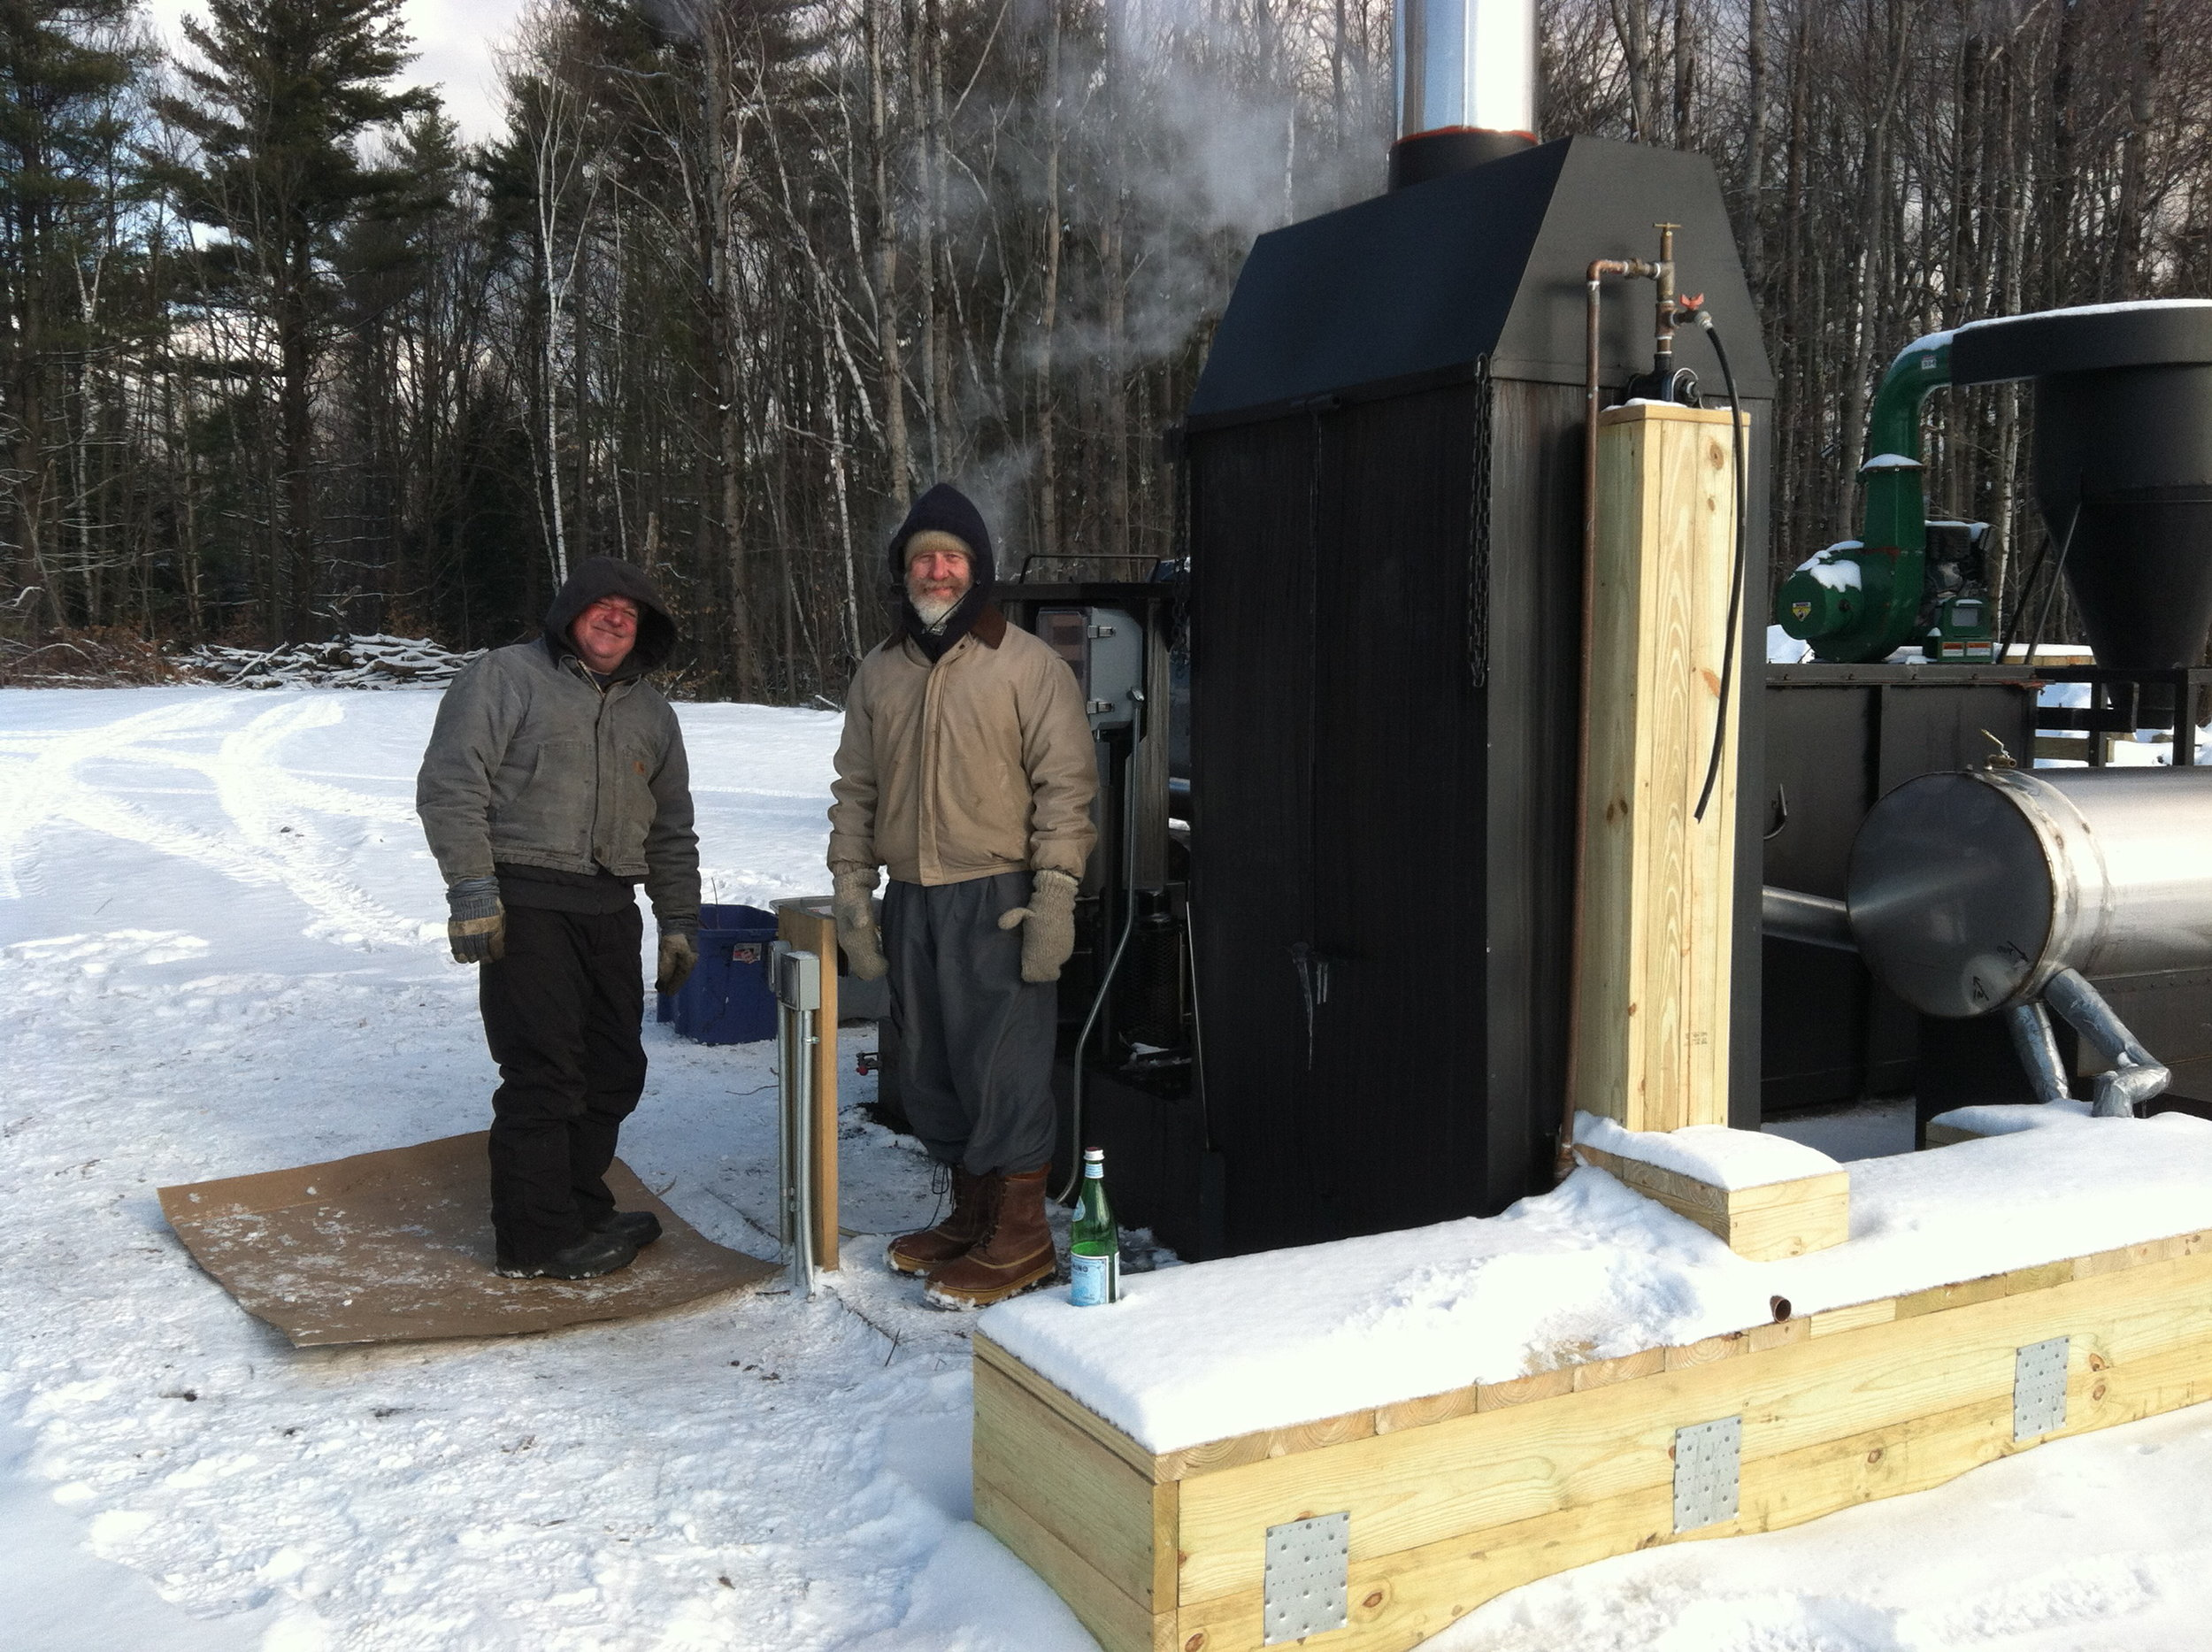 Ron and Rich on the retort (before we built our warming hut).